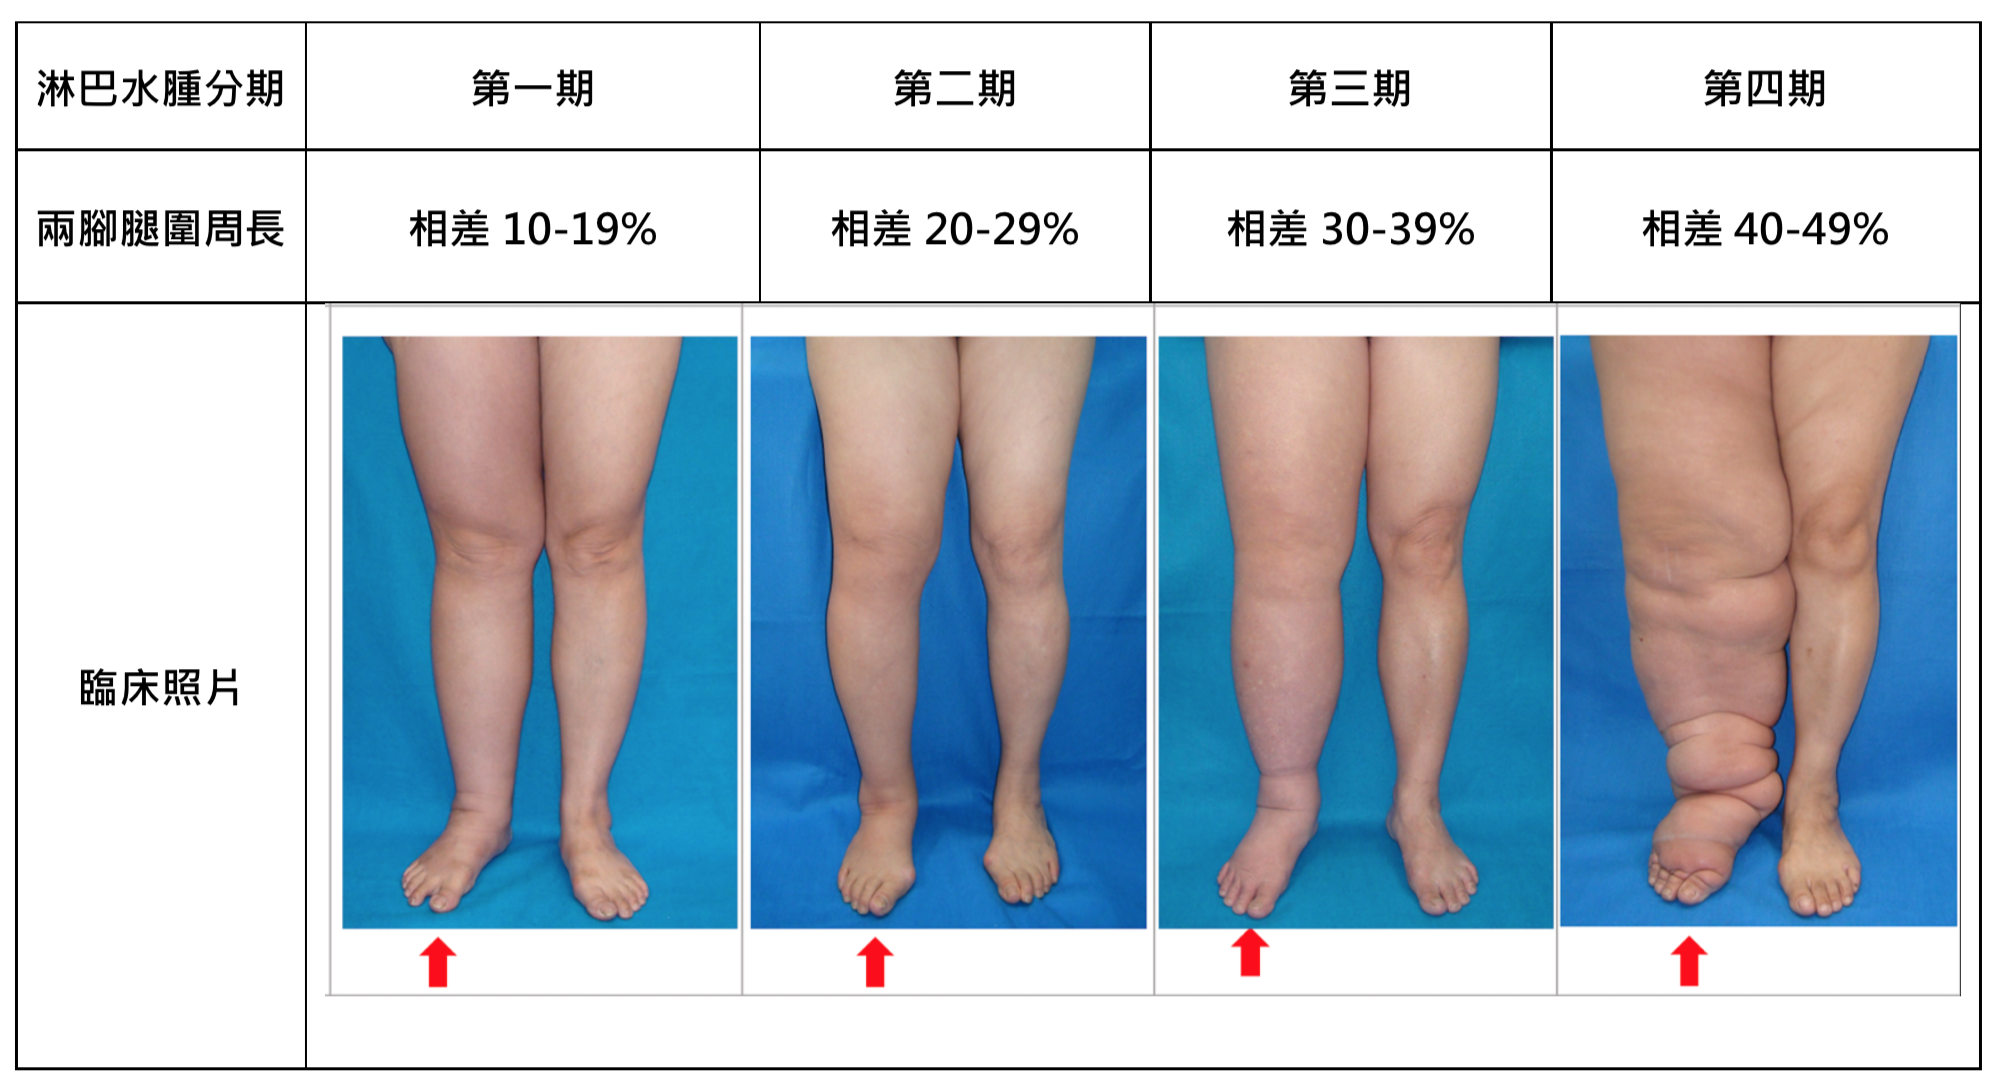 Lymphedema Grading Systems - Before Treatment photos - patients legs